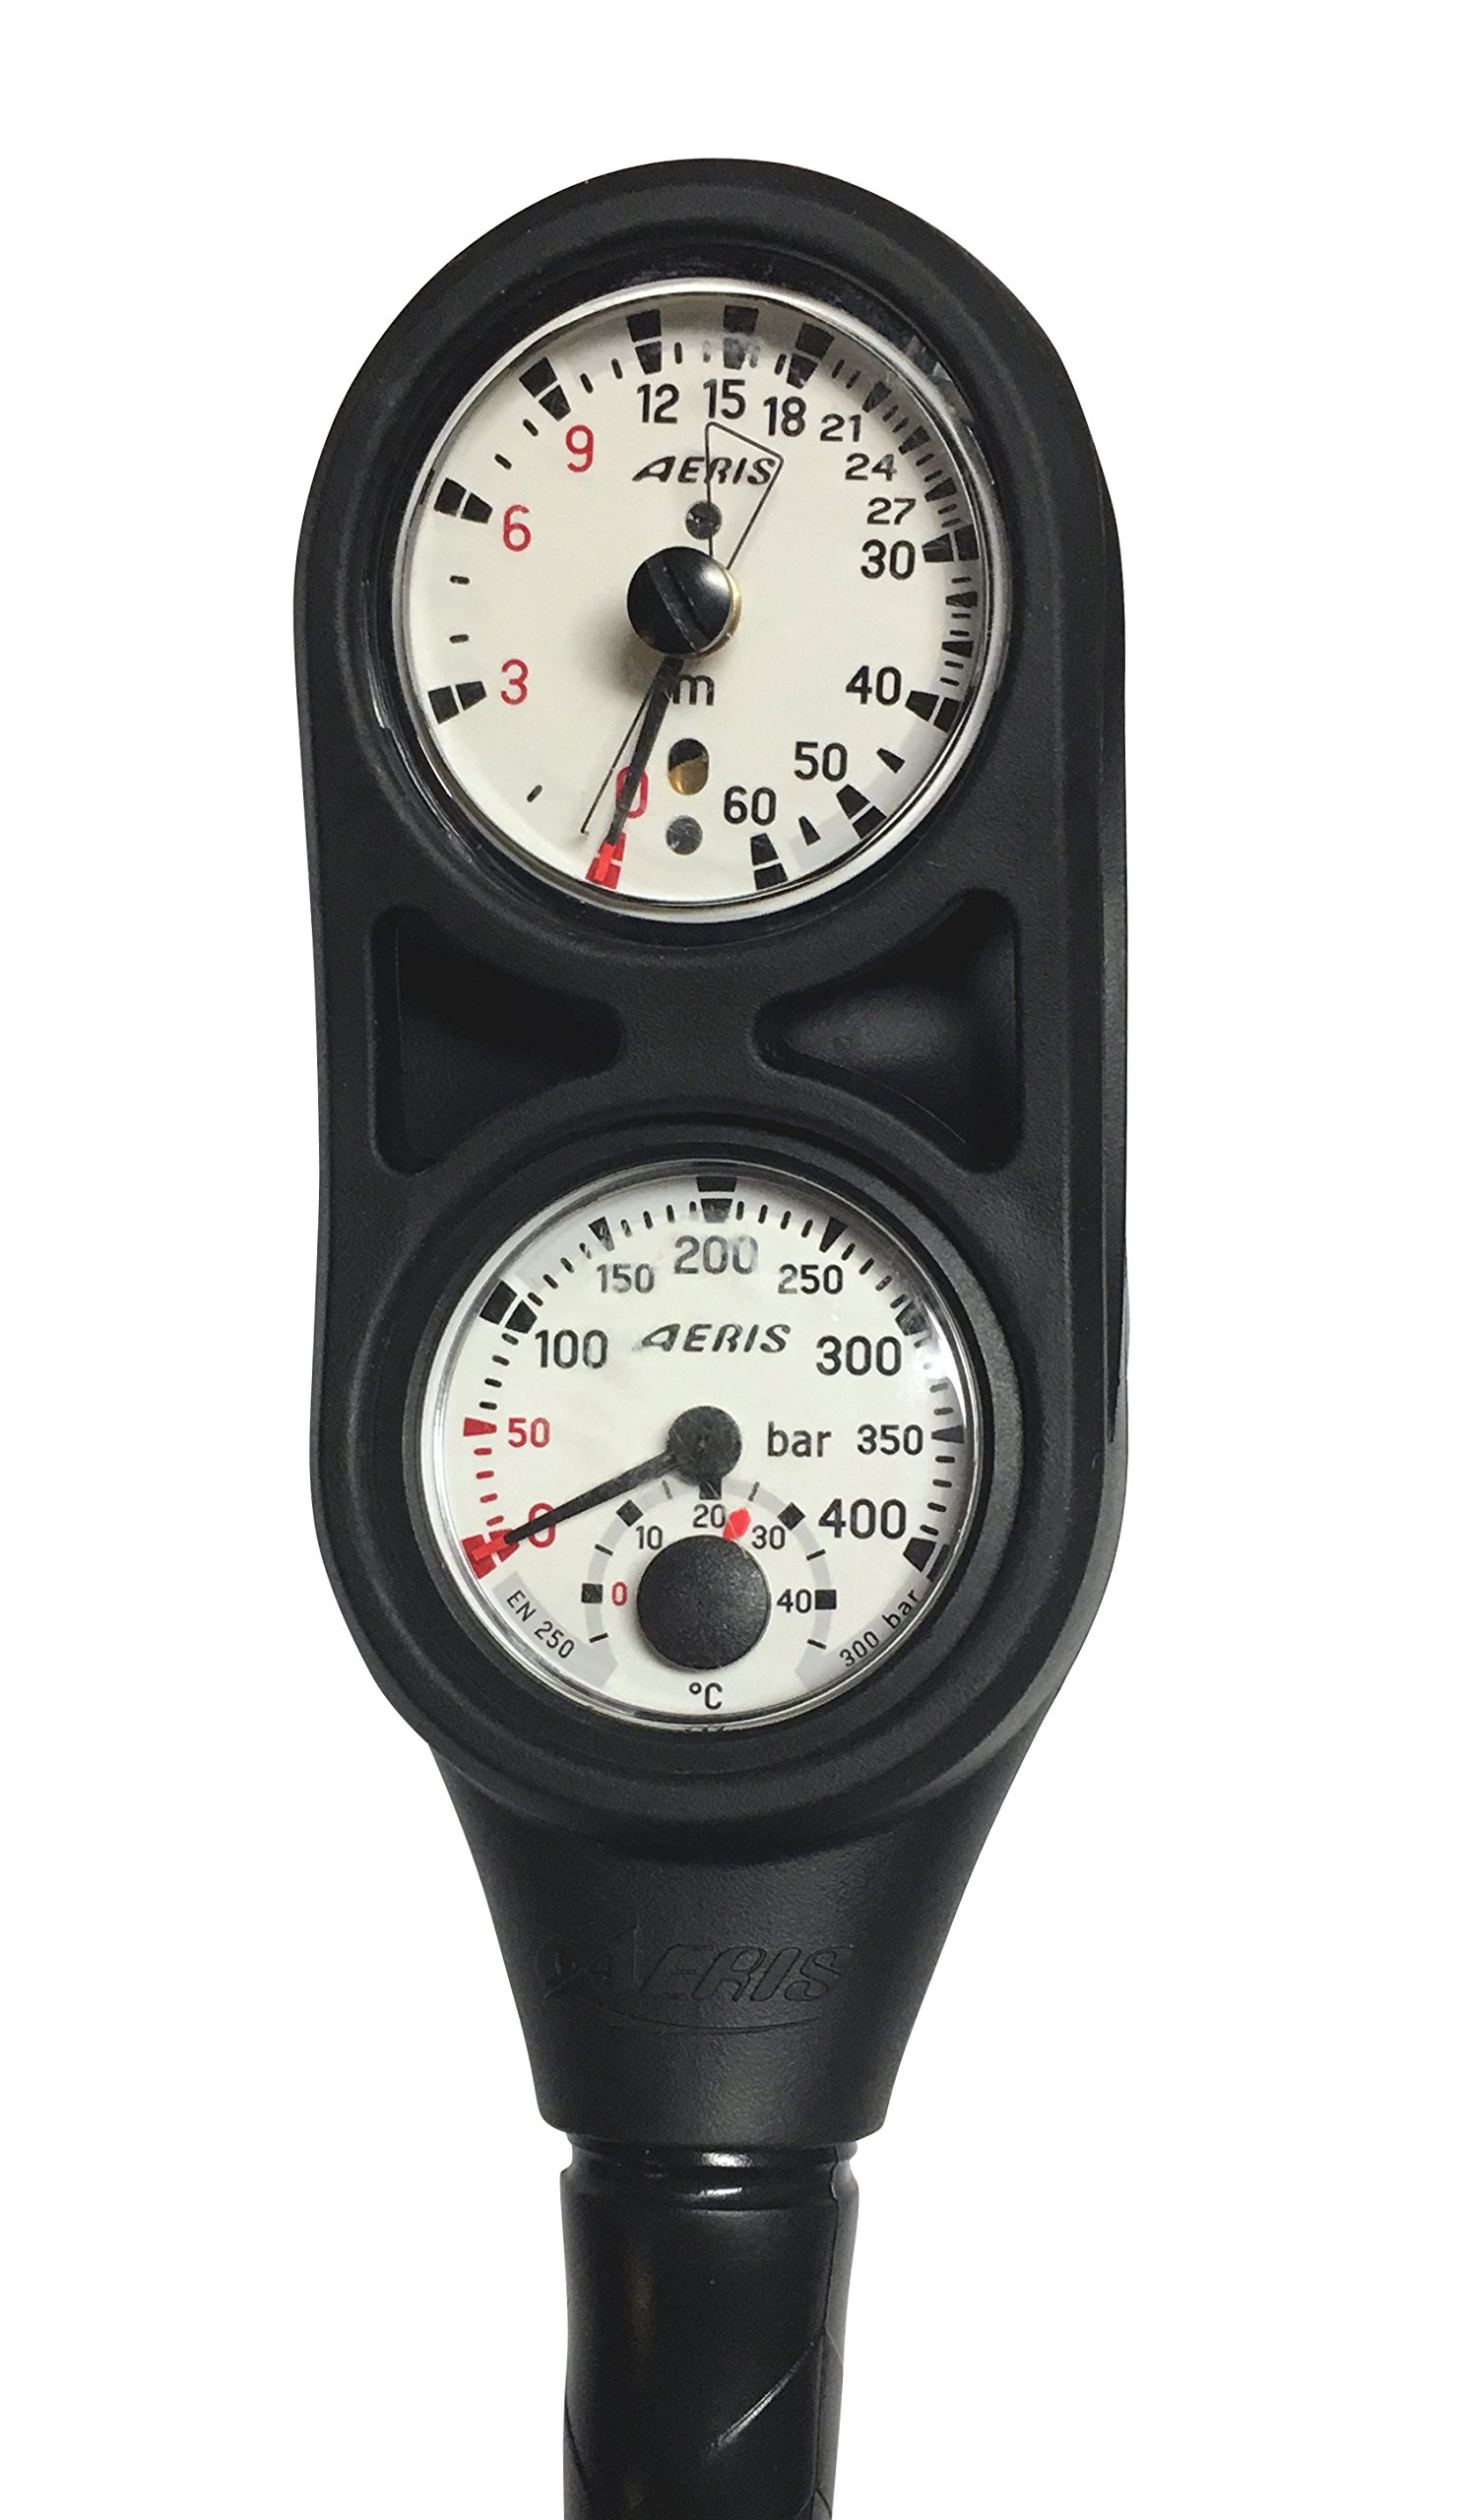 AERIS Metric Depth Gauge and Bar Pressure Gauge Console for Scuba Diving